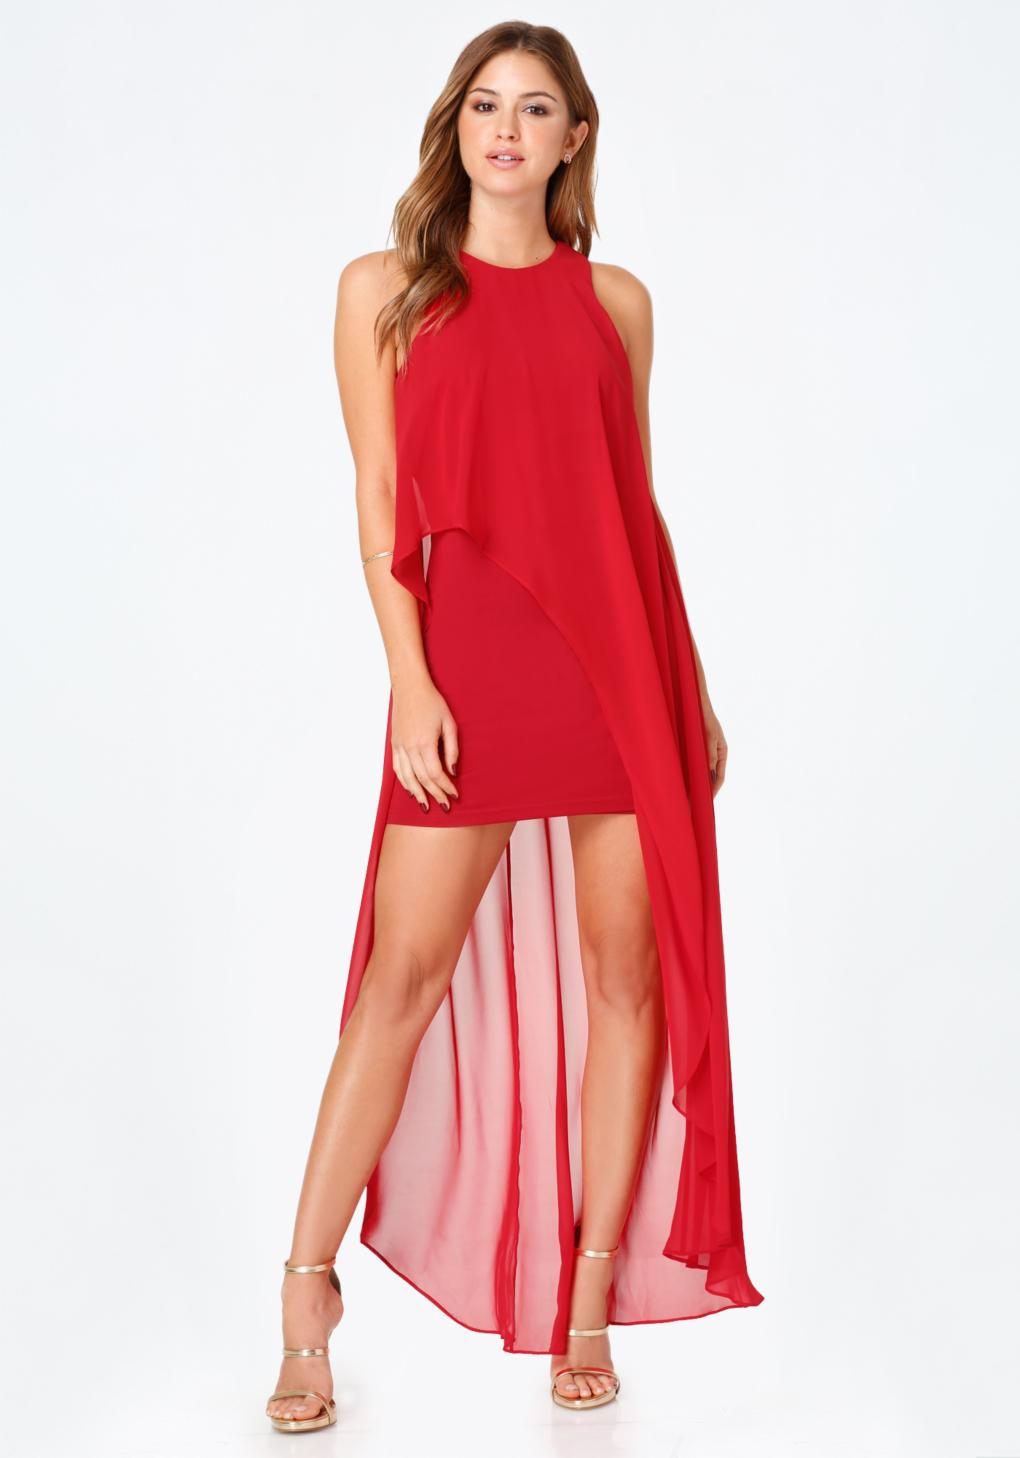 f48b81e9f3064 Bebe Chiffon Hi-lo Overlay Dress in Red - Lyst